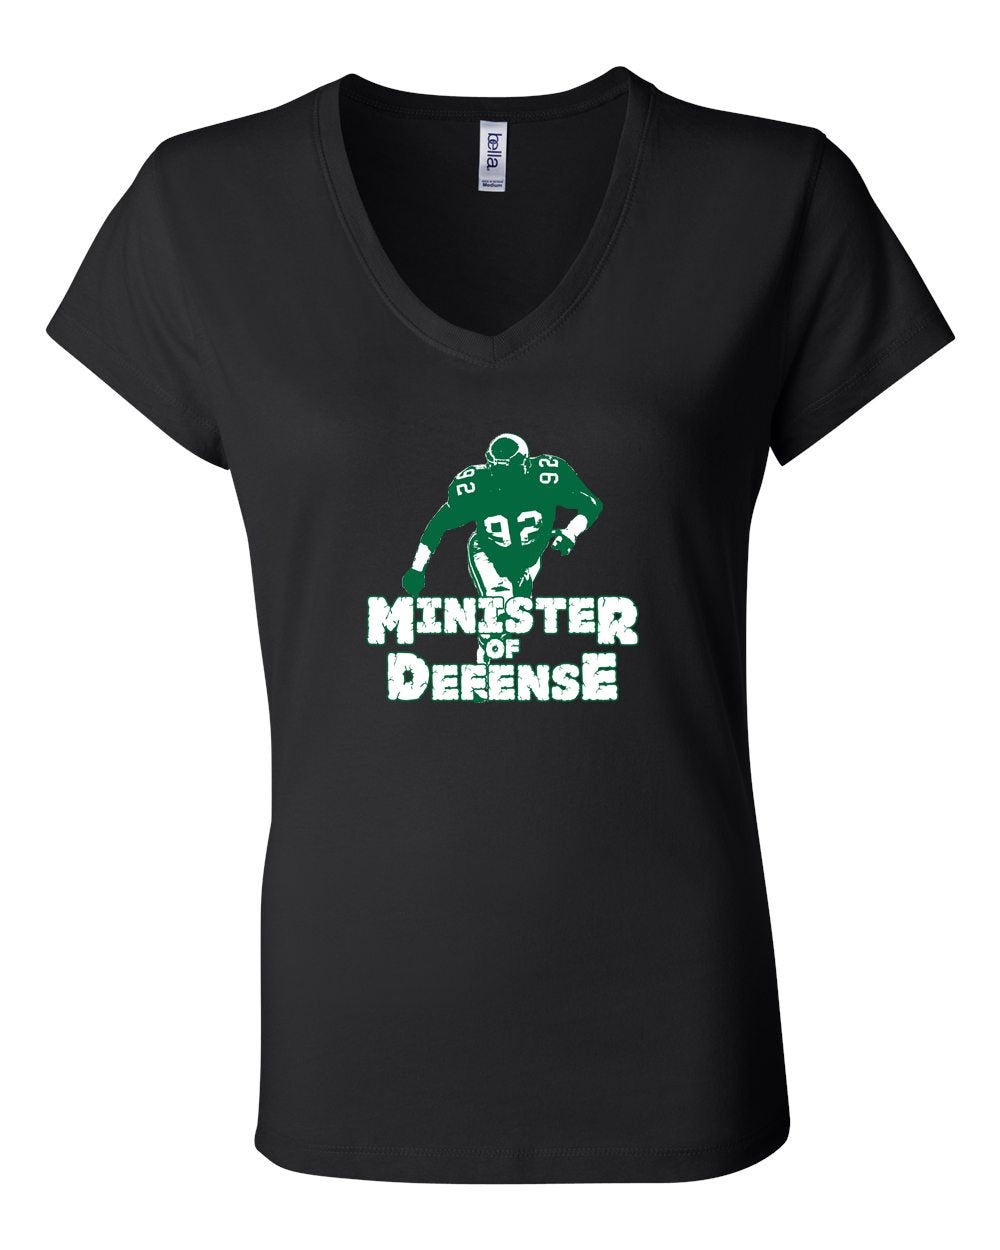 Minister Of Defense LADIES Junior Fit V-Neck